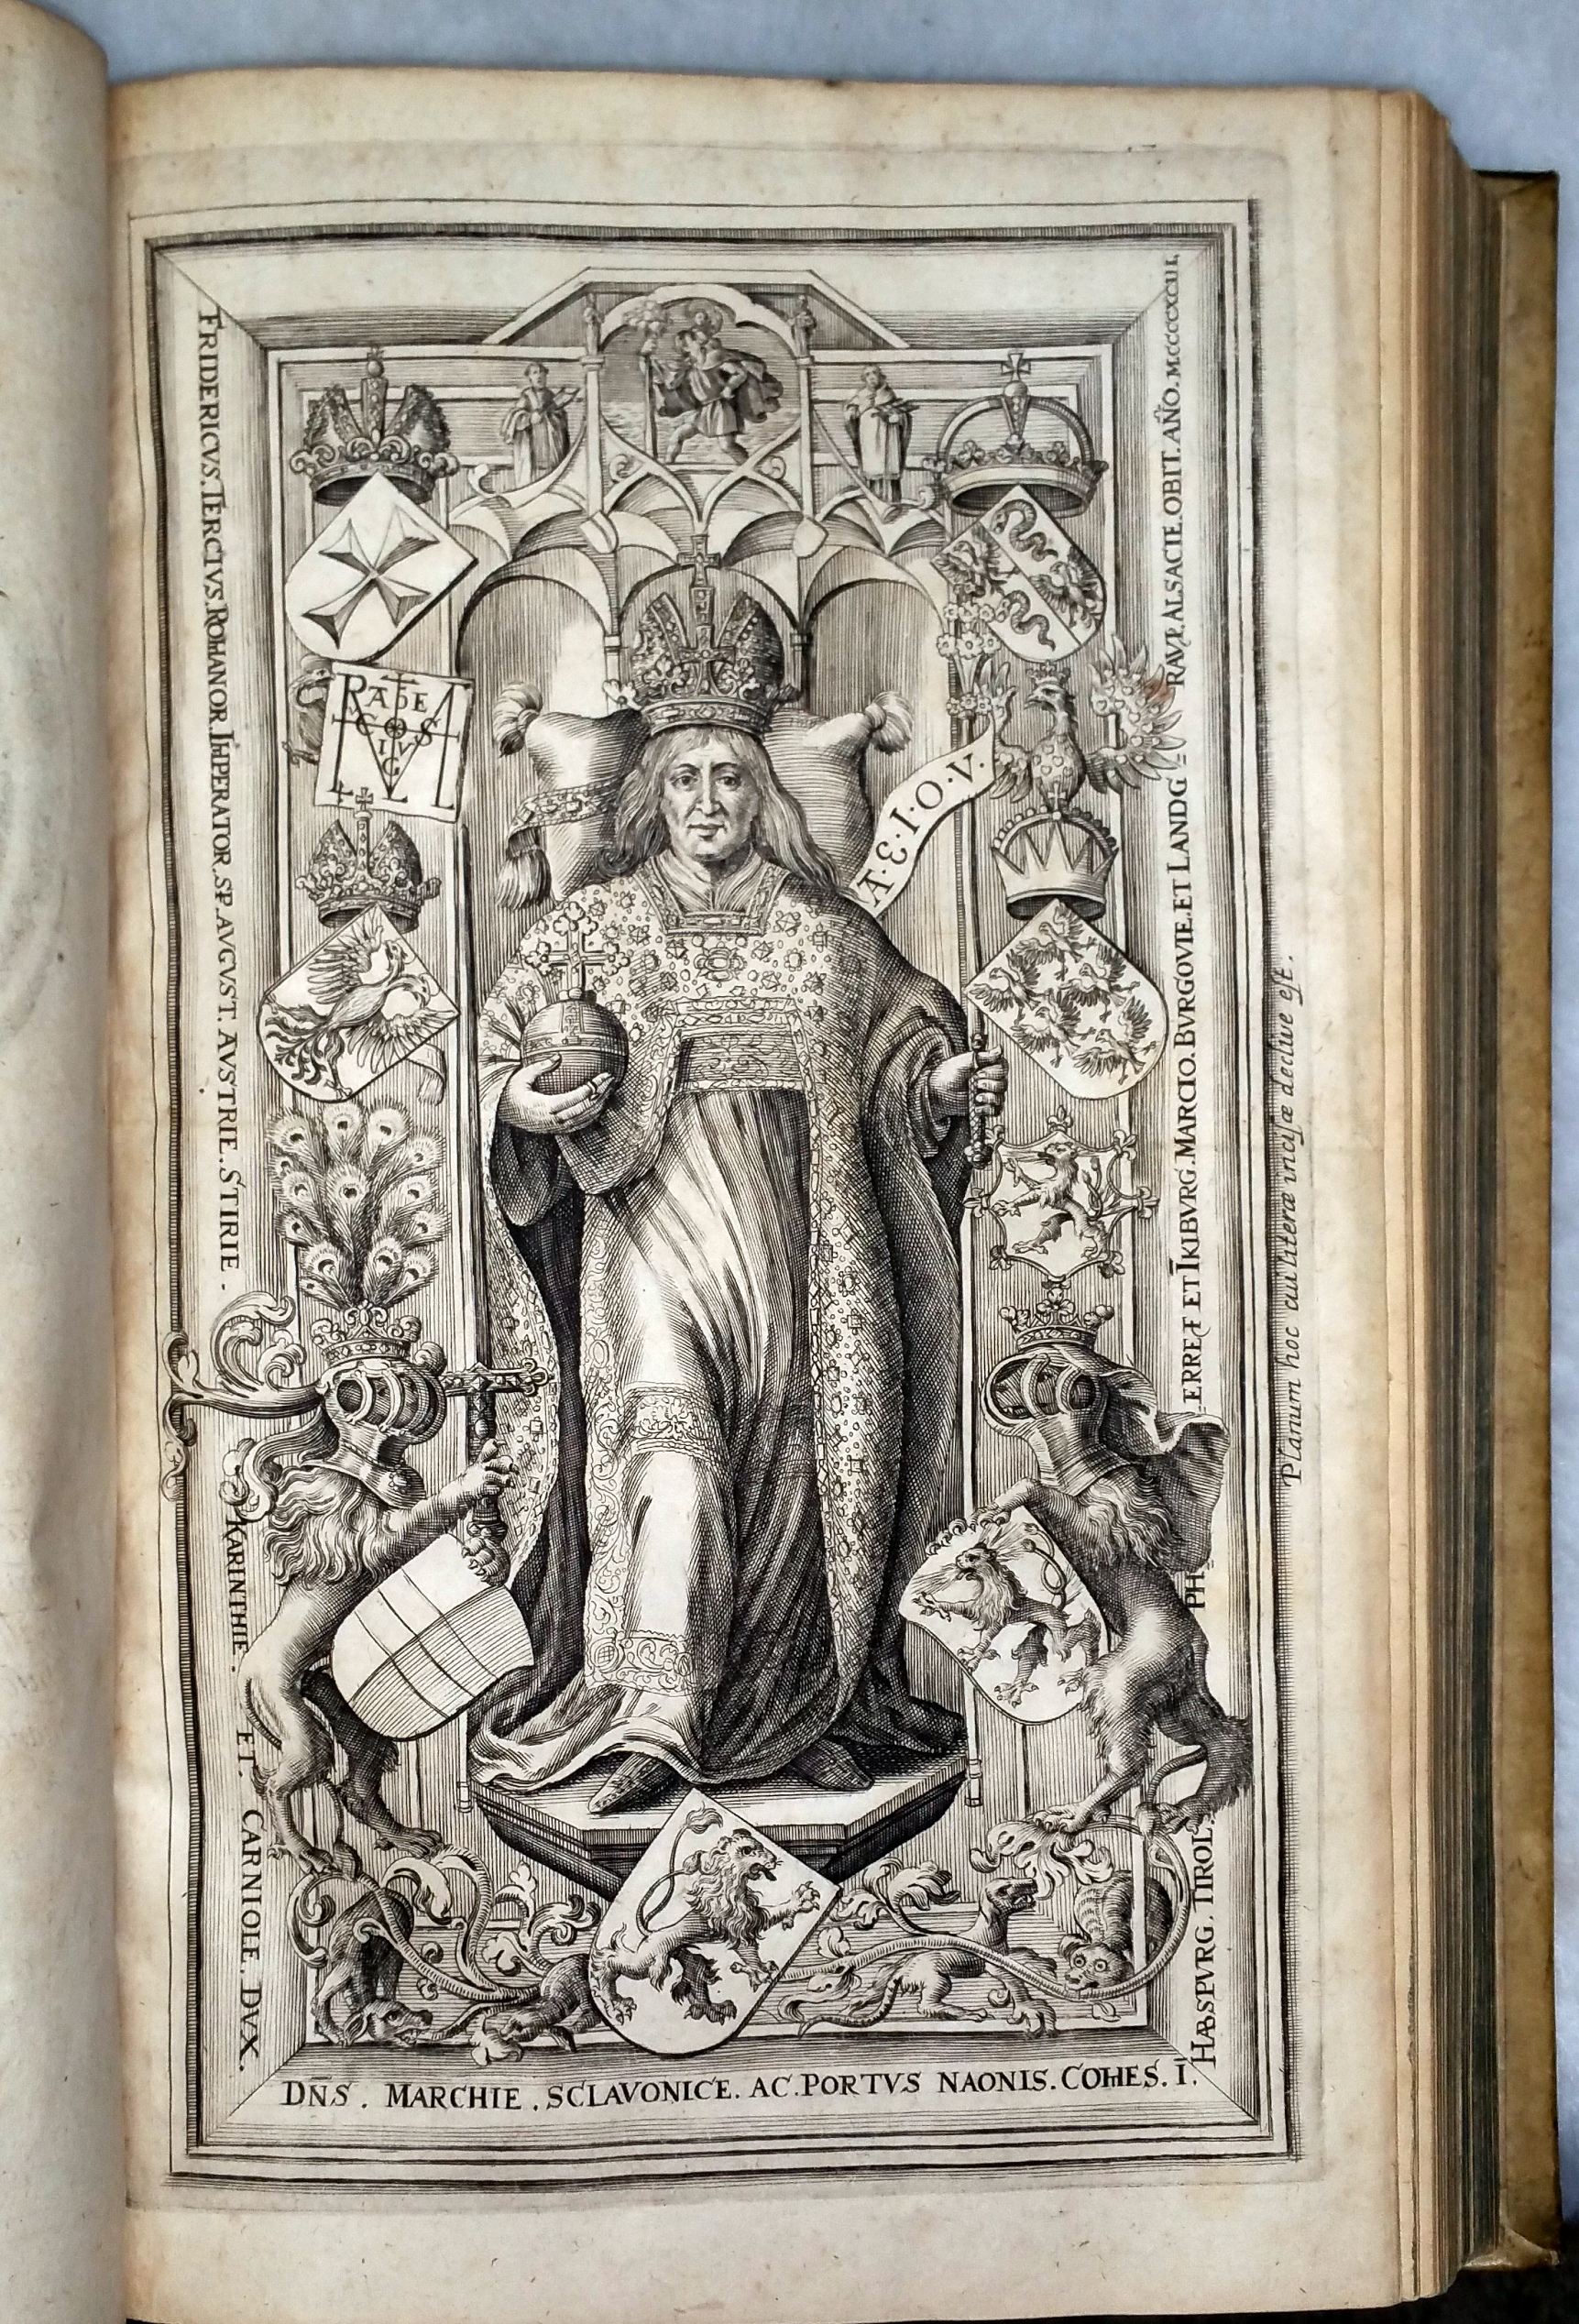 Image for Aeneae Silvii Episcopi Senensis Postea Pii Papae II.  Historia Rerum Friderici Tertii Imperatoris Ex Mxcto Optimae Notae...[with] Annales De Gestis Caroli Magni Poetae Anonymi [with] Andreae Presbyteri Ratisbonensis Chronicon